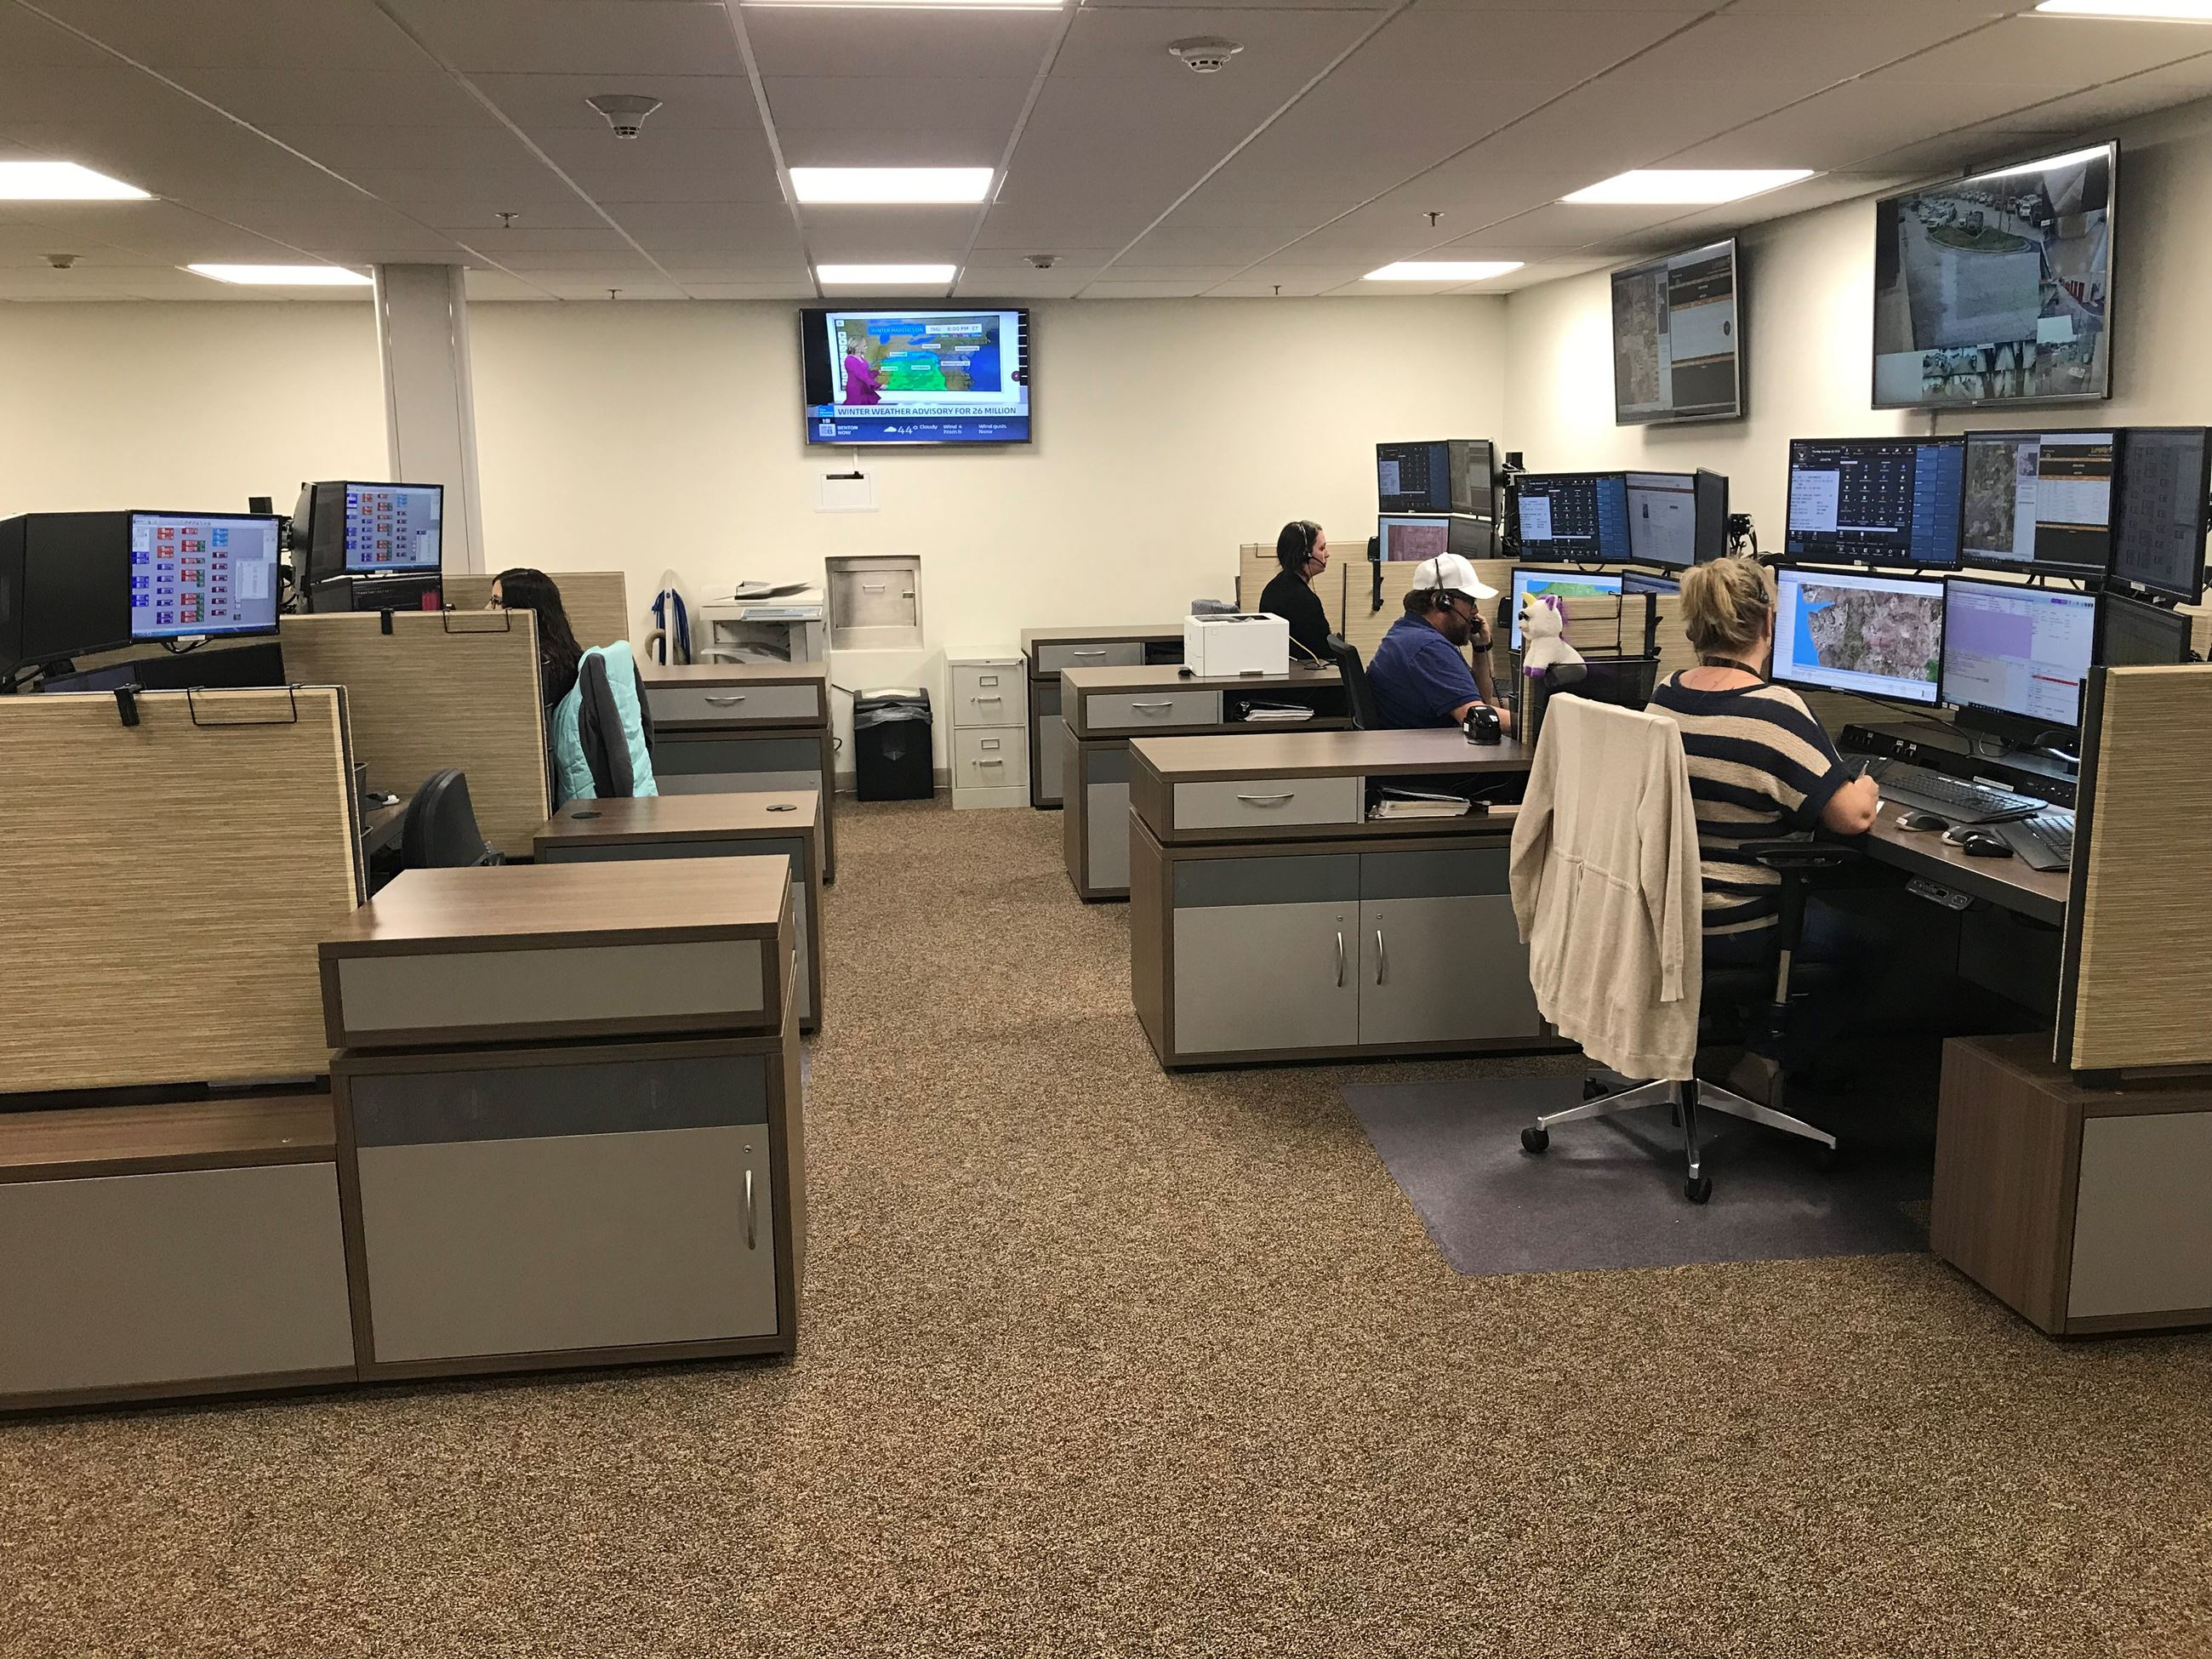 garland county 911 center image